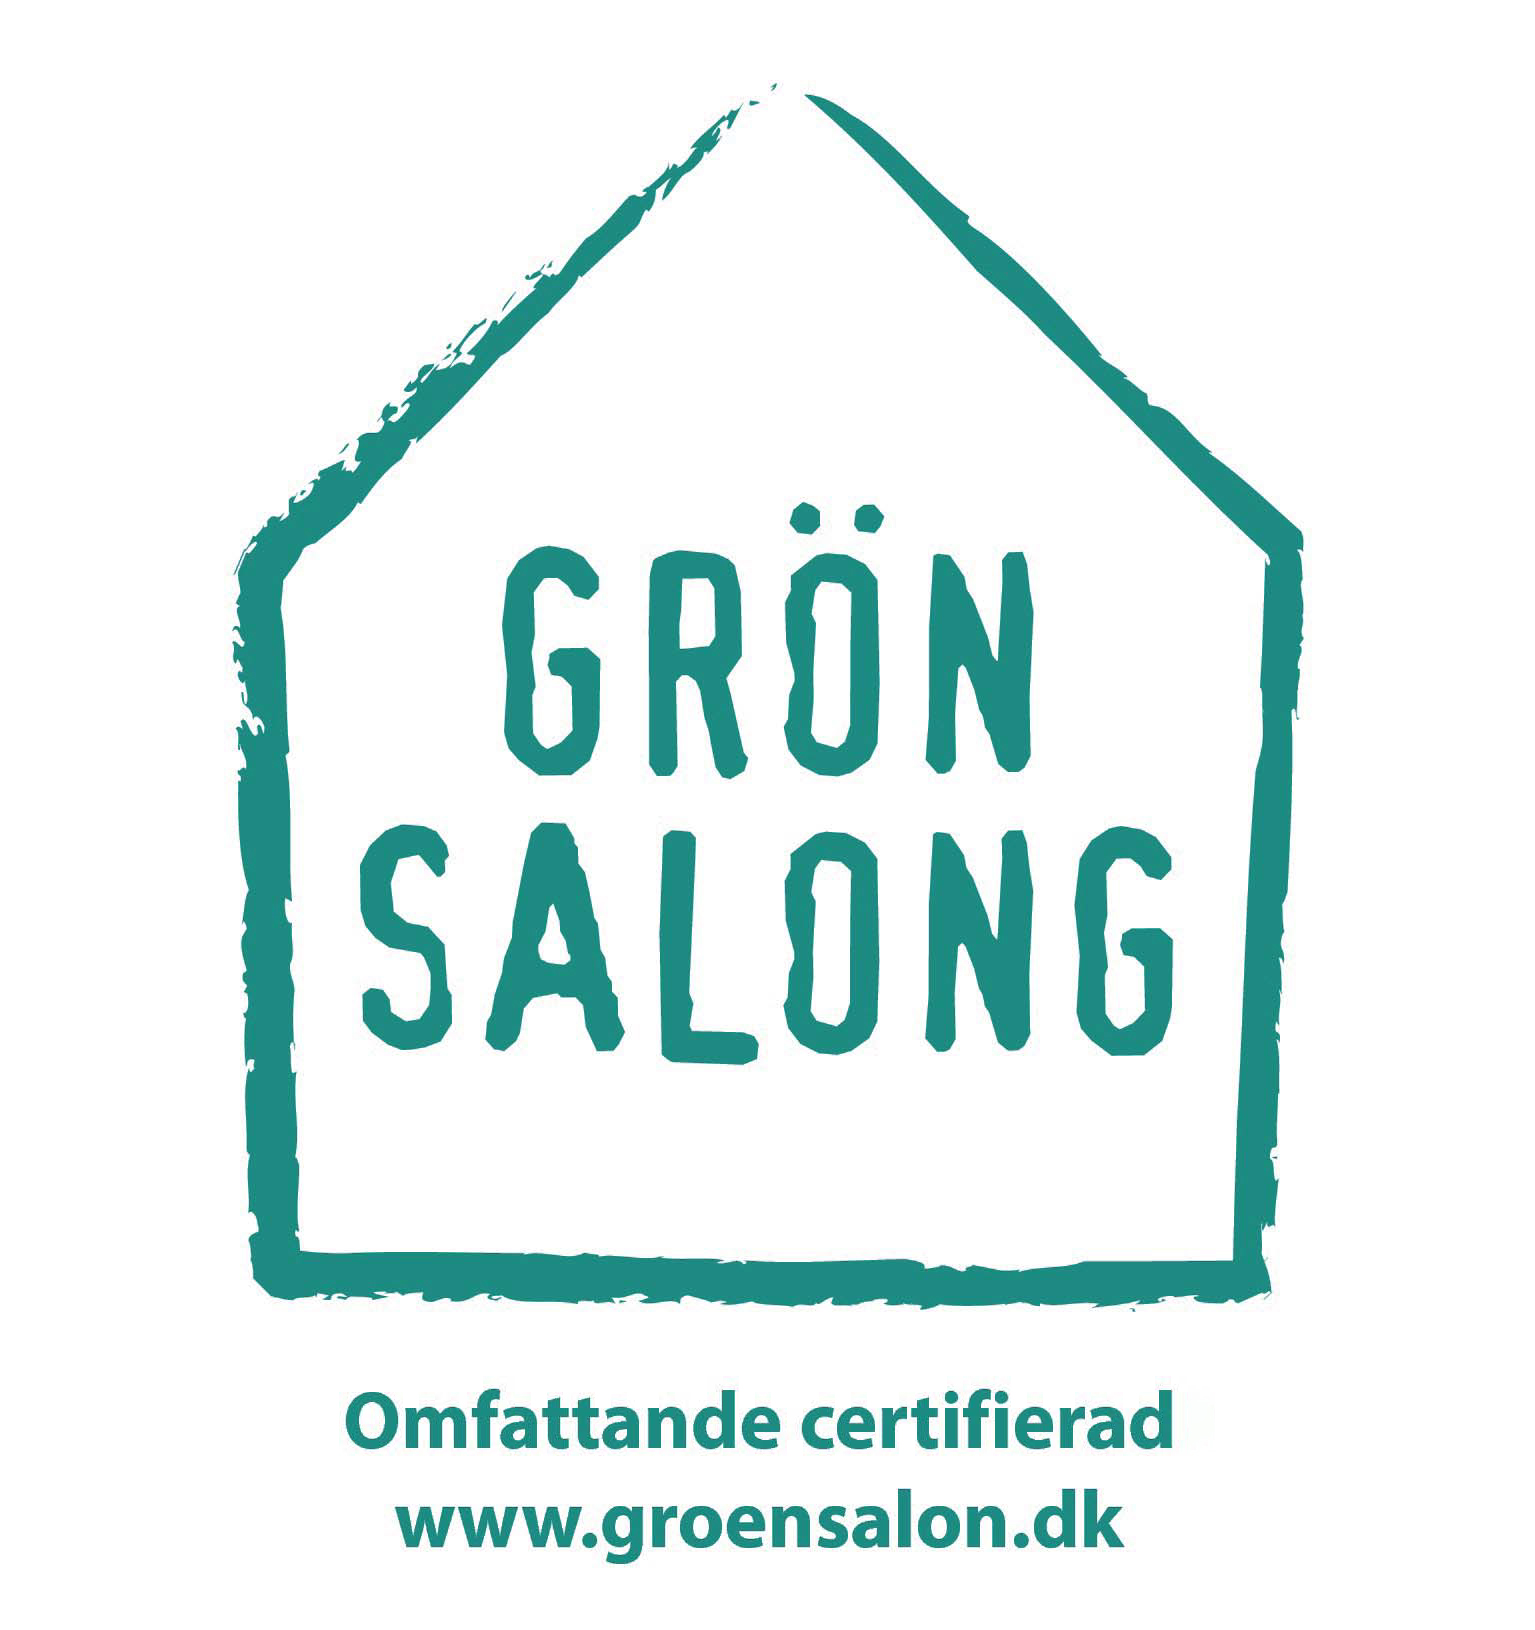 grön_salong_01.indd